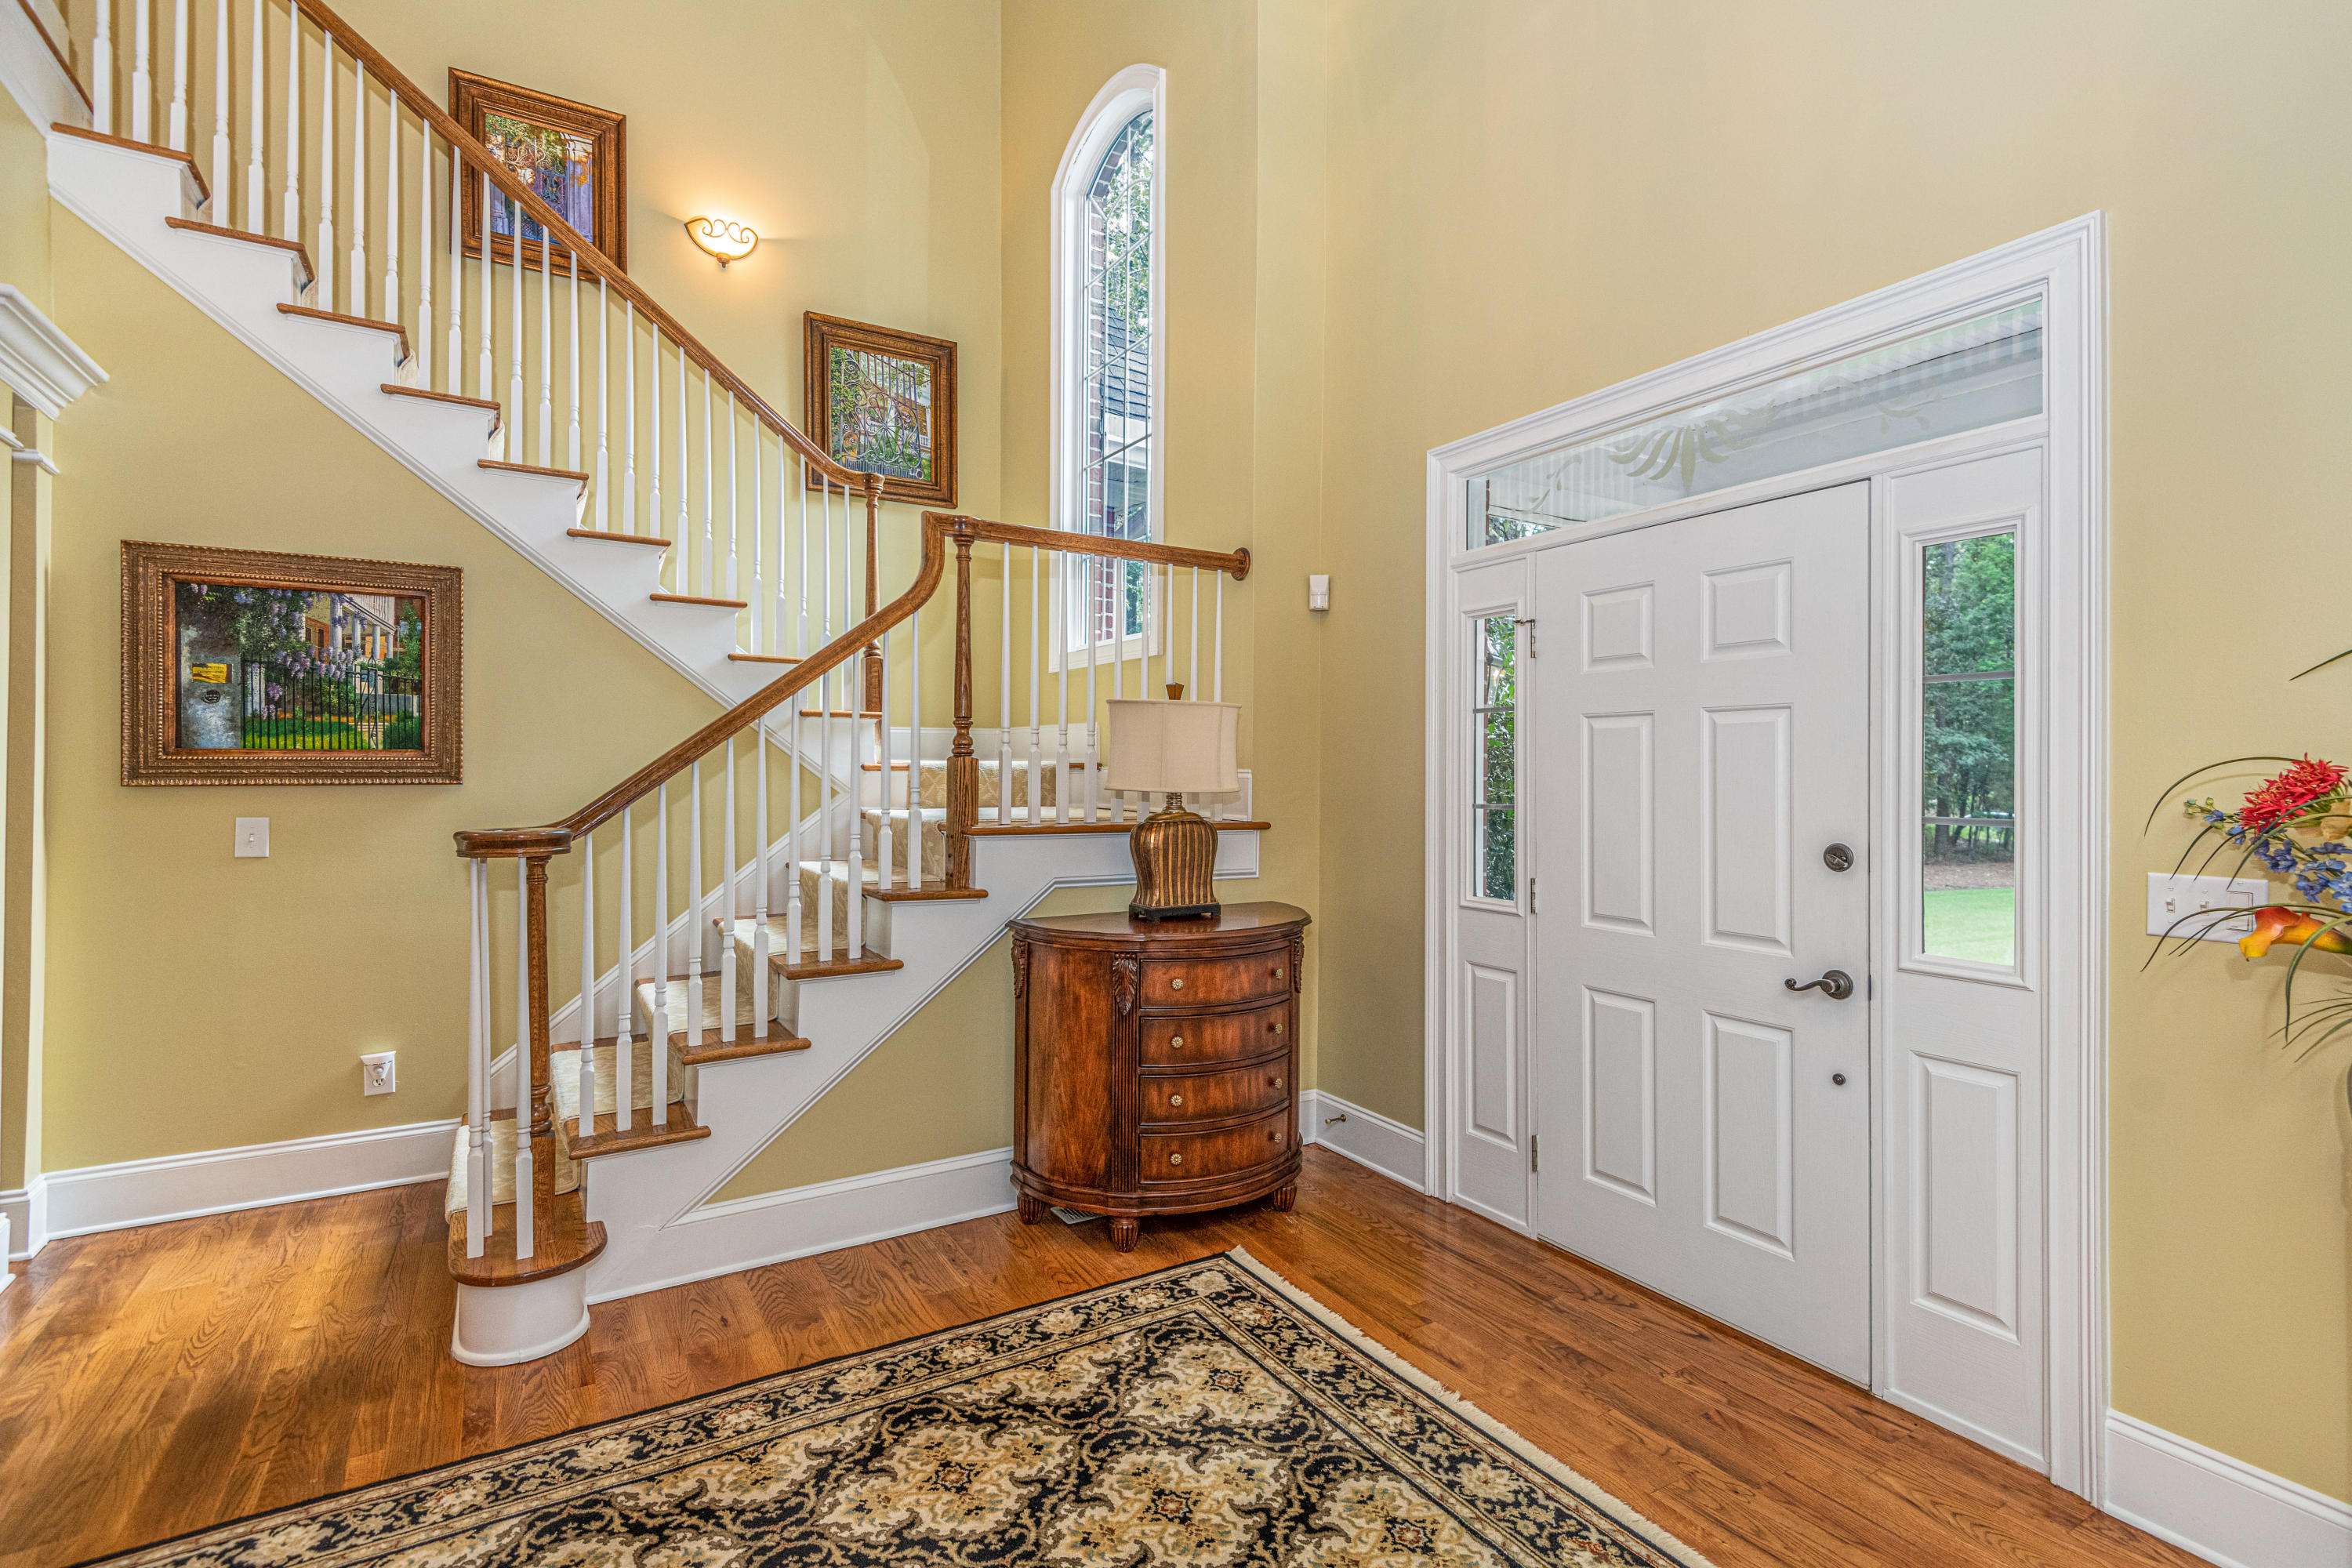 Dunes West Homes For Sale - 1837 Shell Ring, Mount Pleasant, SC - 14